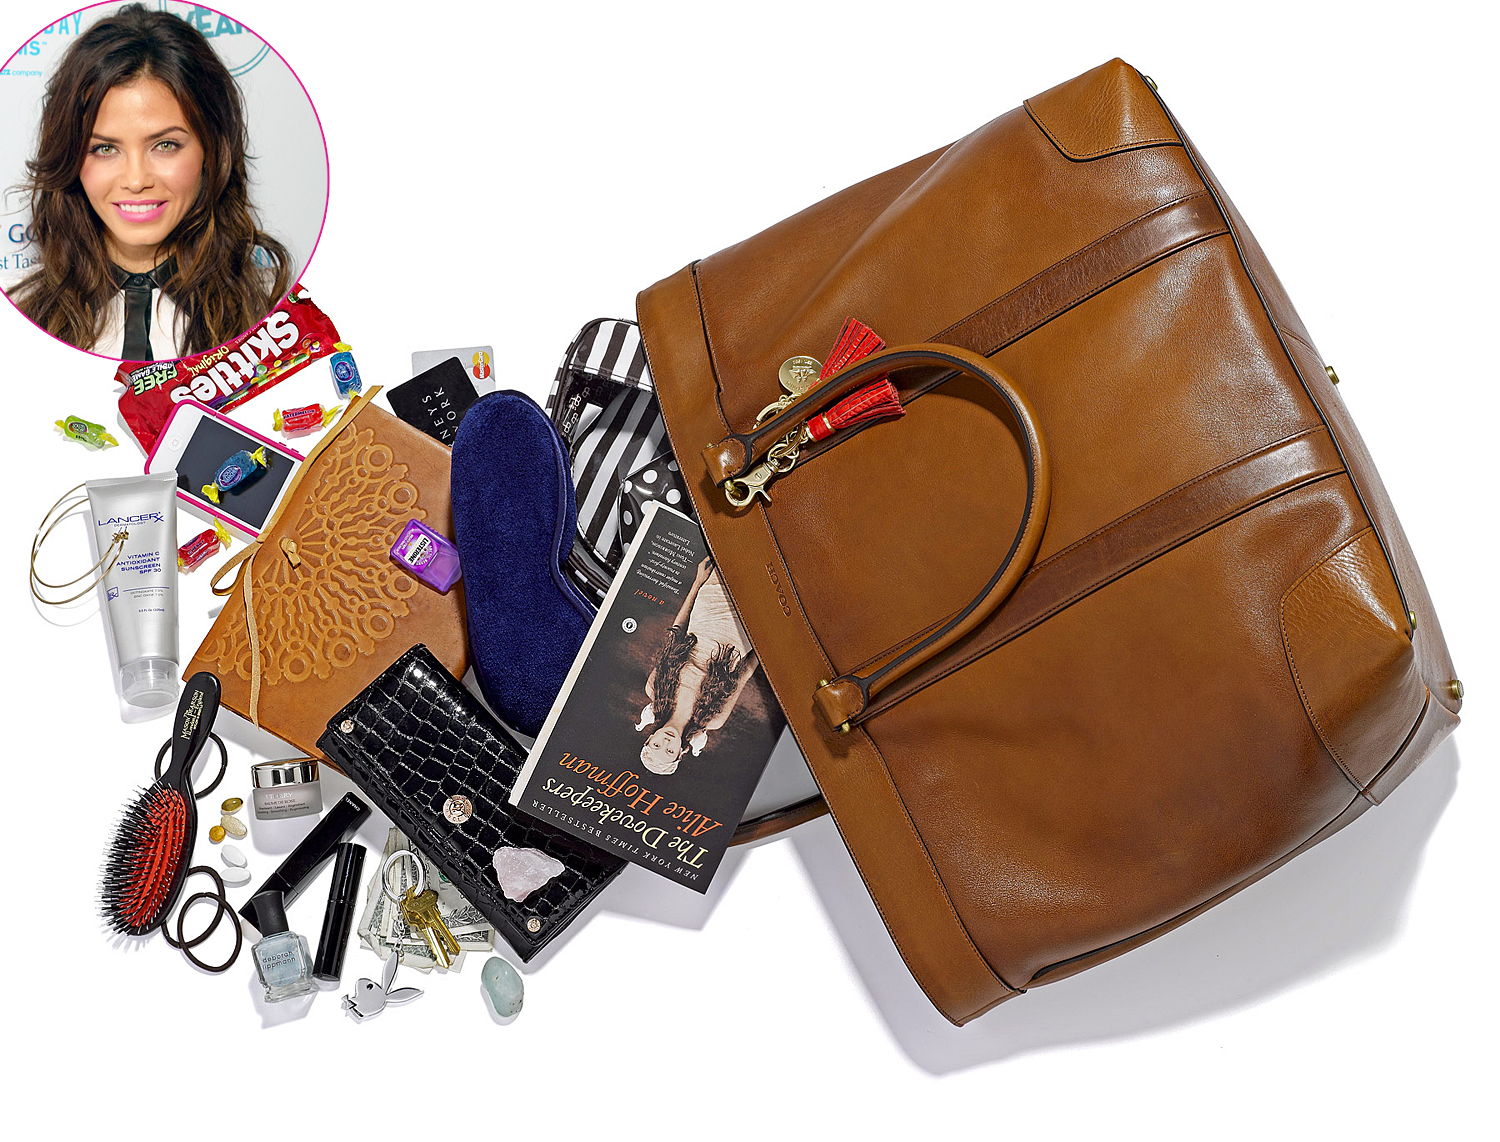 Celebs Tell Us  What s In My Bag  - Us Weekly a847920213768